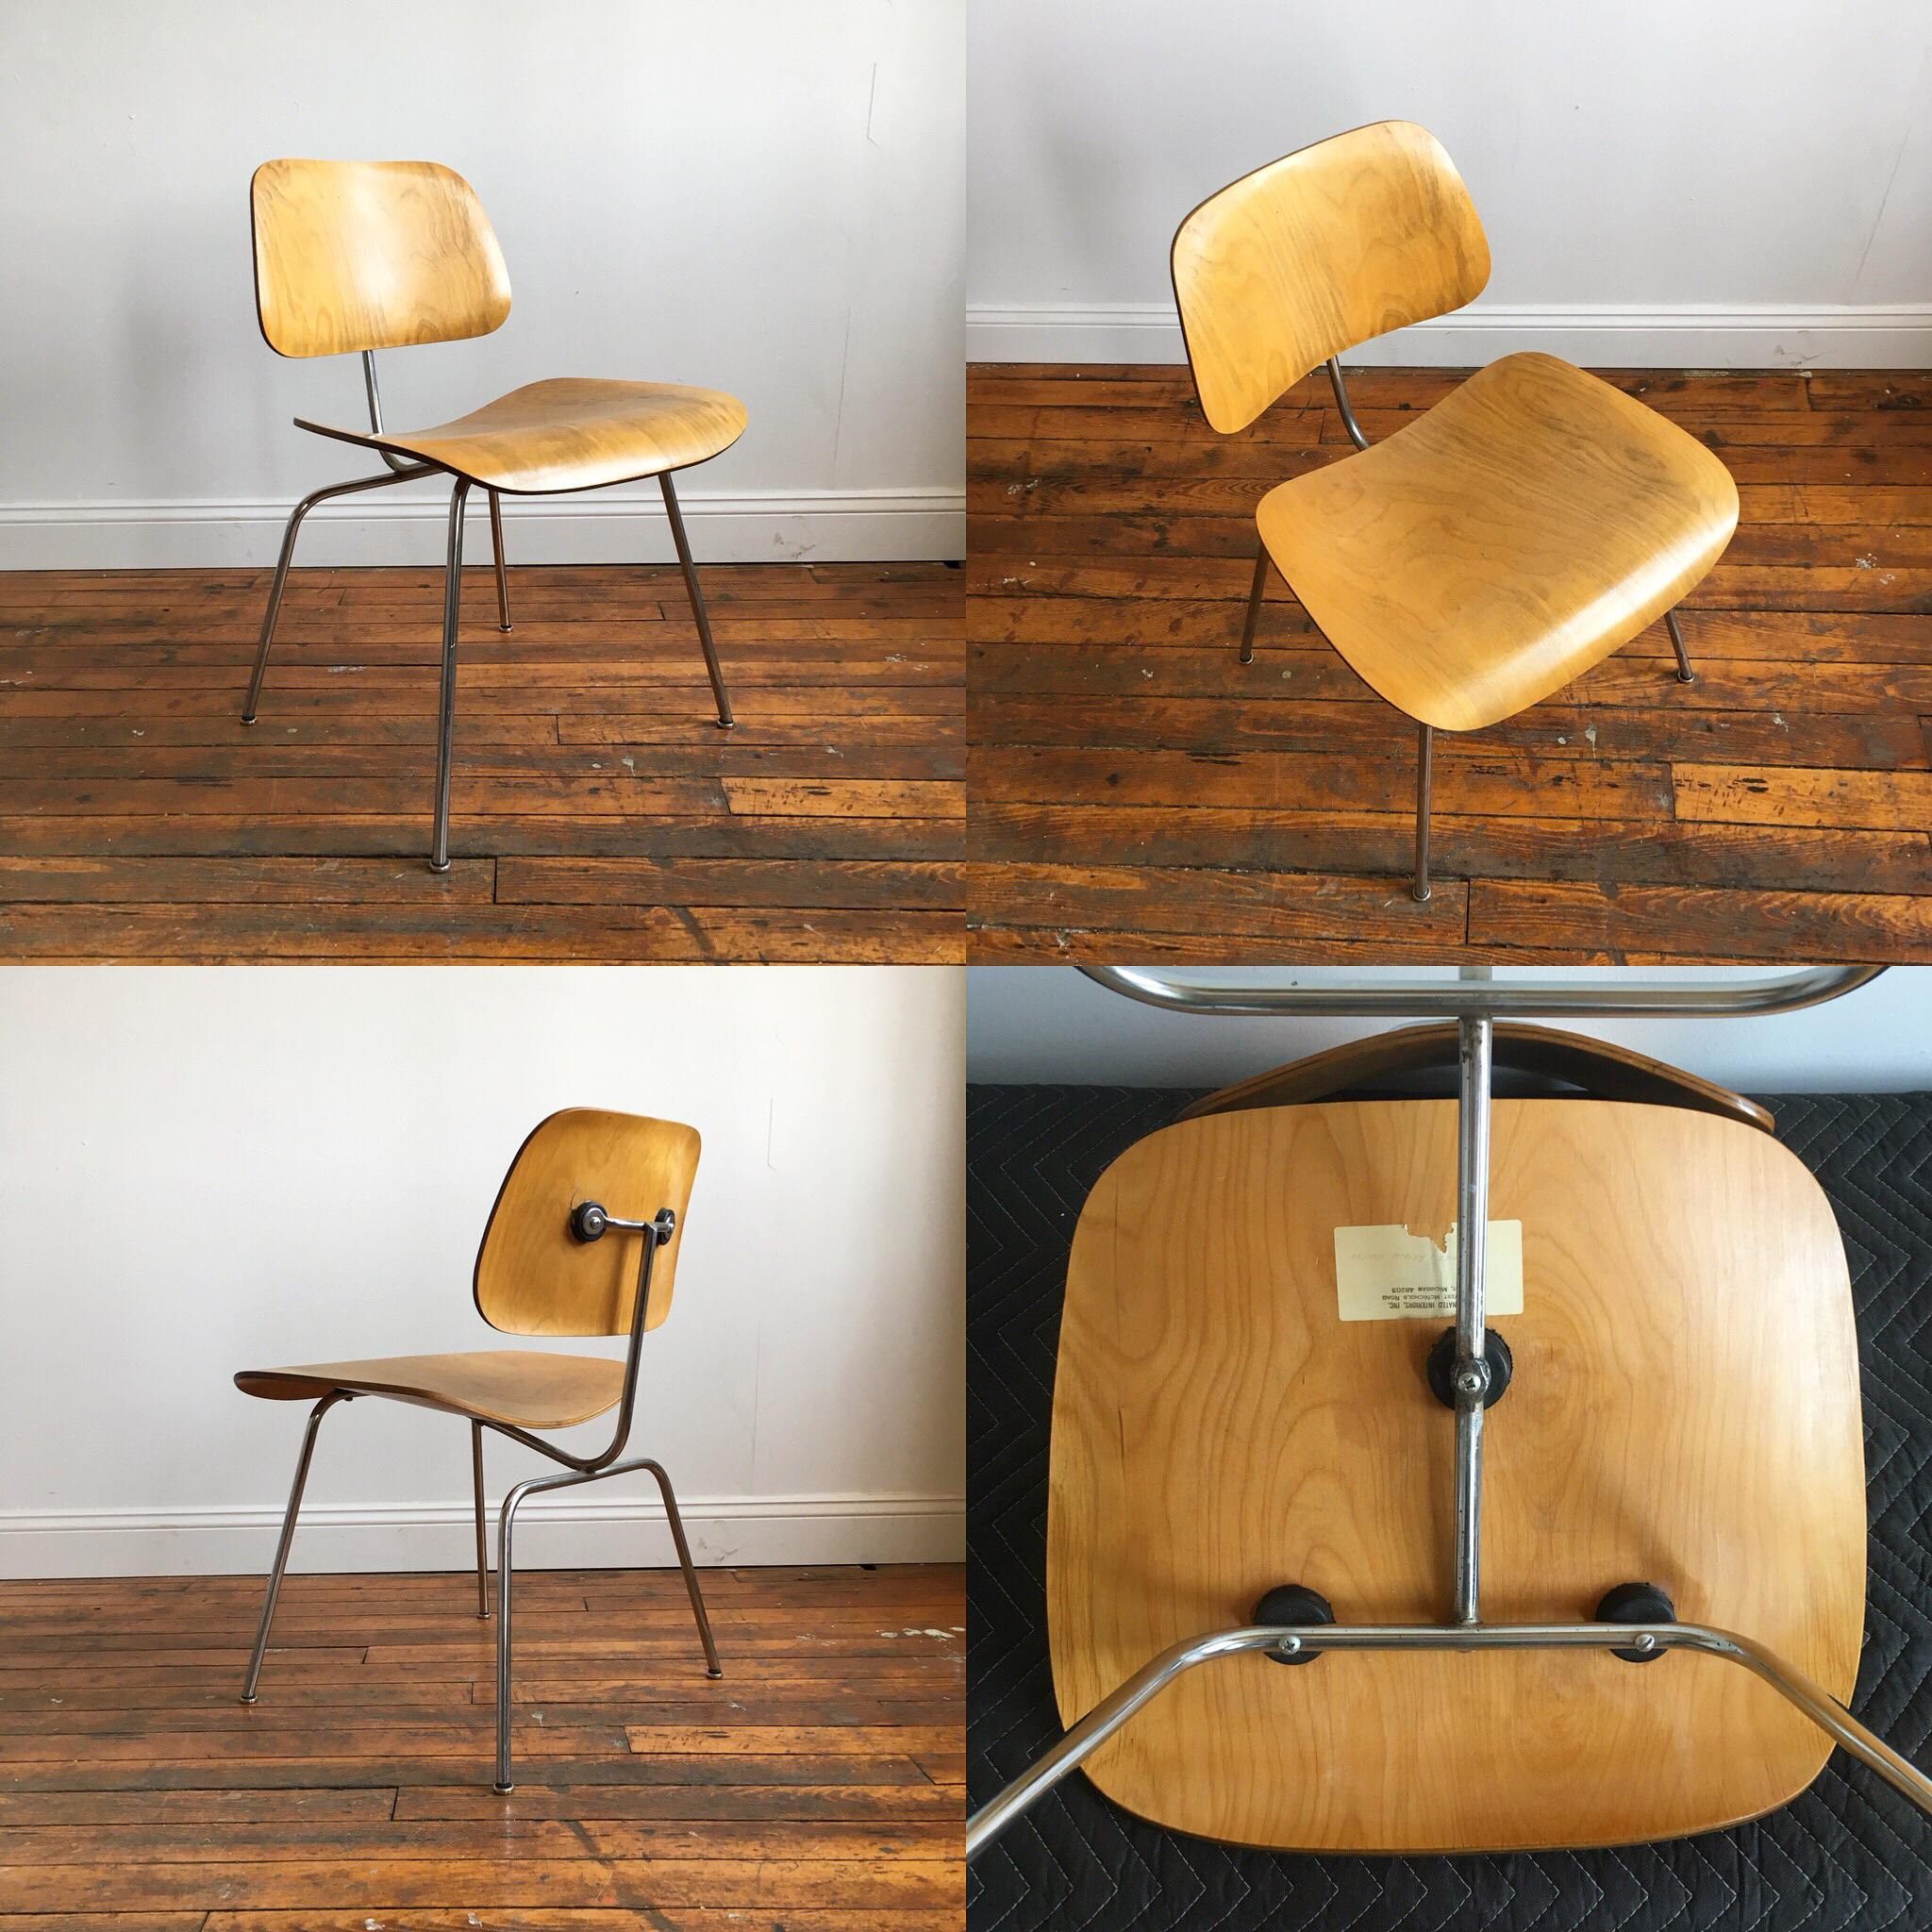 Vintage Herman Miller Eames Molded Plywood Chairs   Set Of 4   Image 5 Of 11